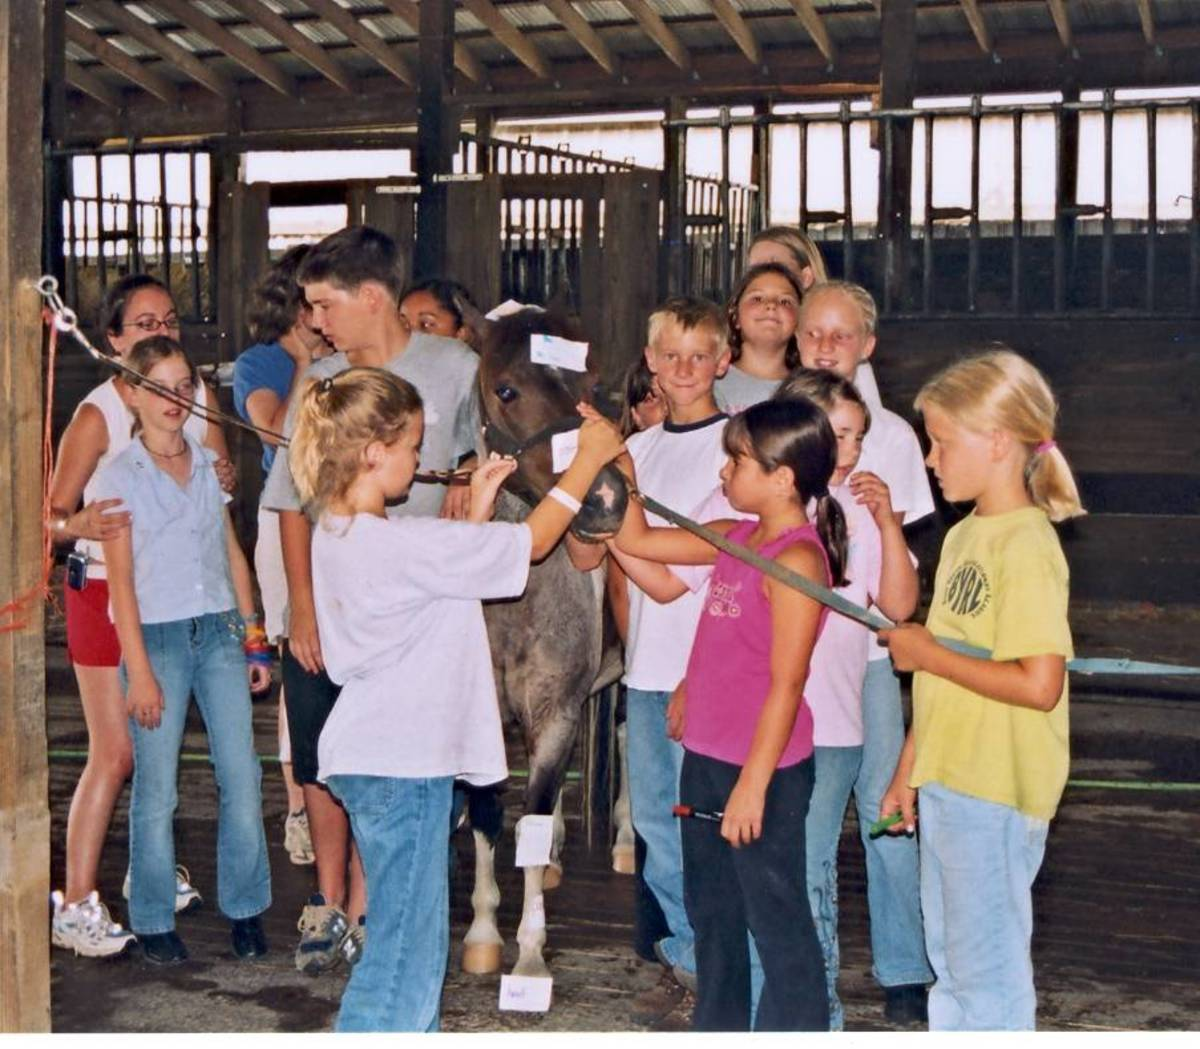 Games in the Horseback Riding Lesson Plan